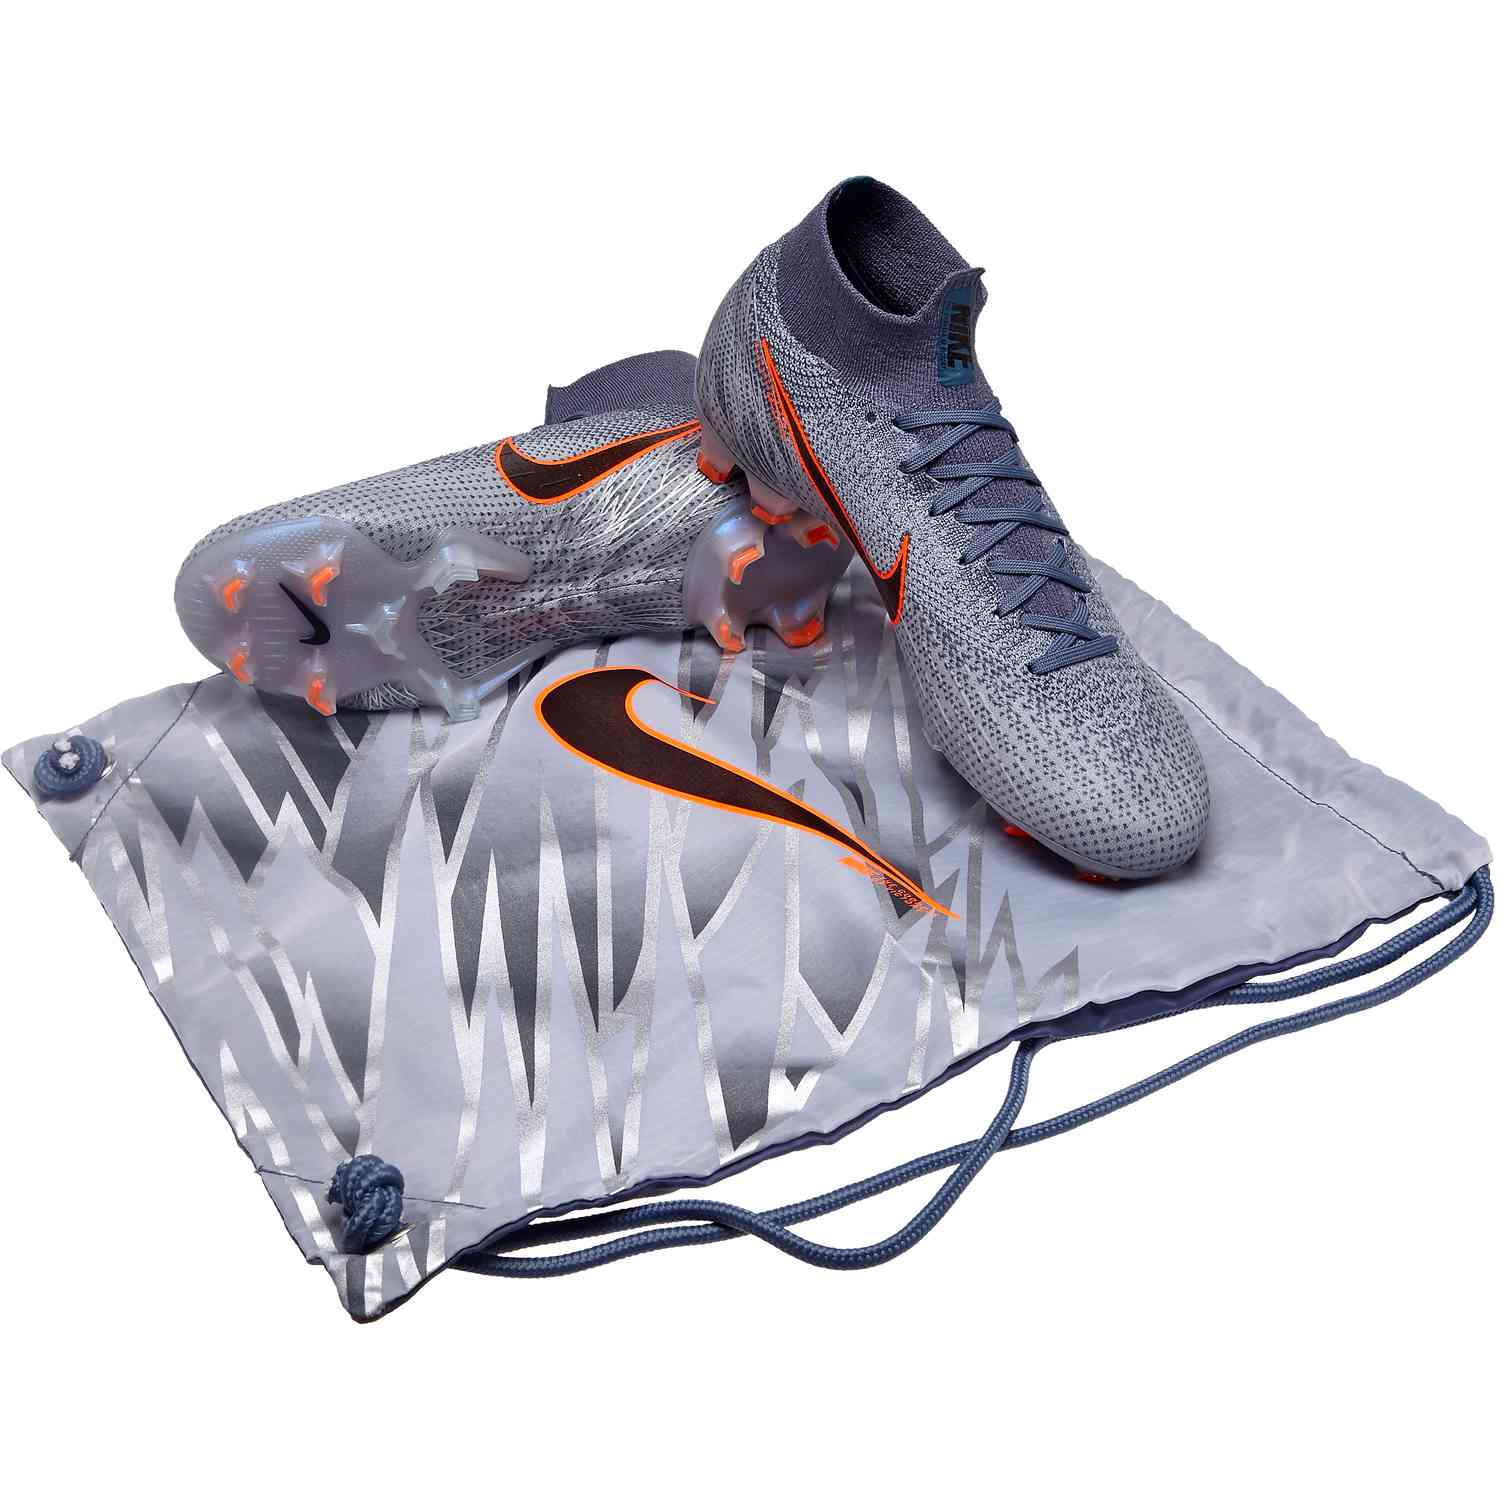 4f9da73664037 Nike Mercurial Superfly 6 Elite FG - Victory Pack - Soccer Master